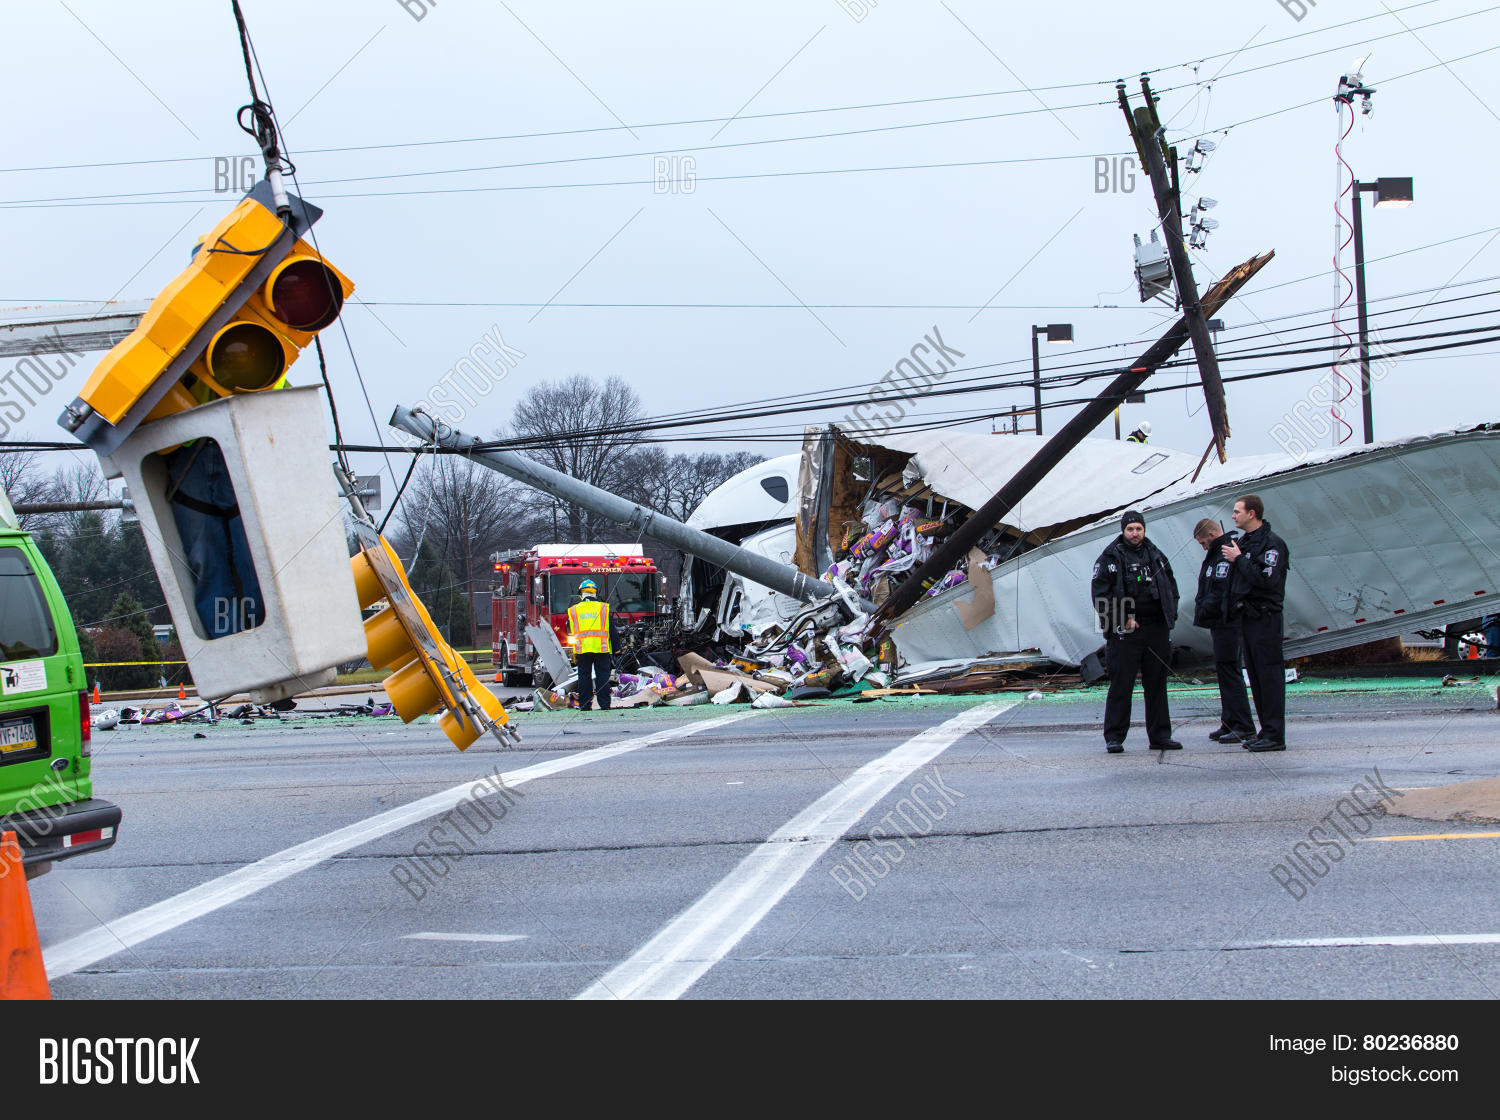 route 30 truck image & photo (free trial) | bigstock